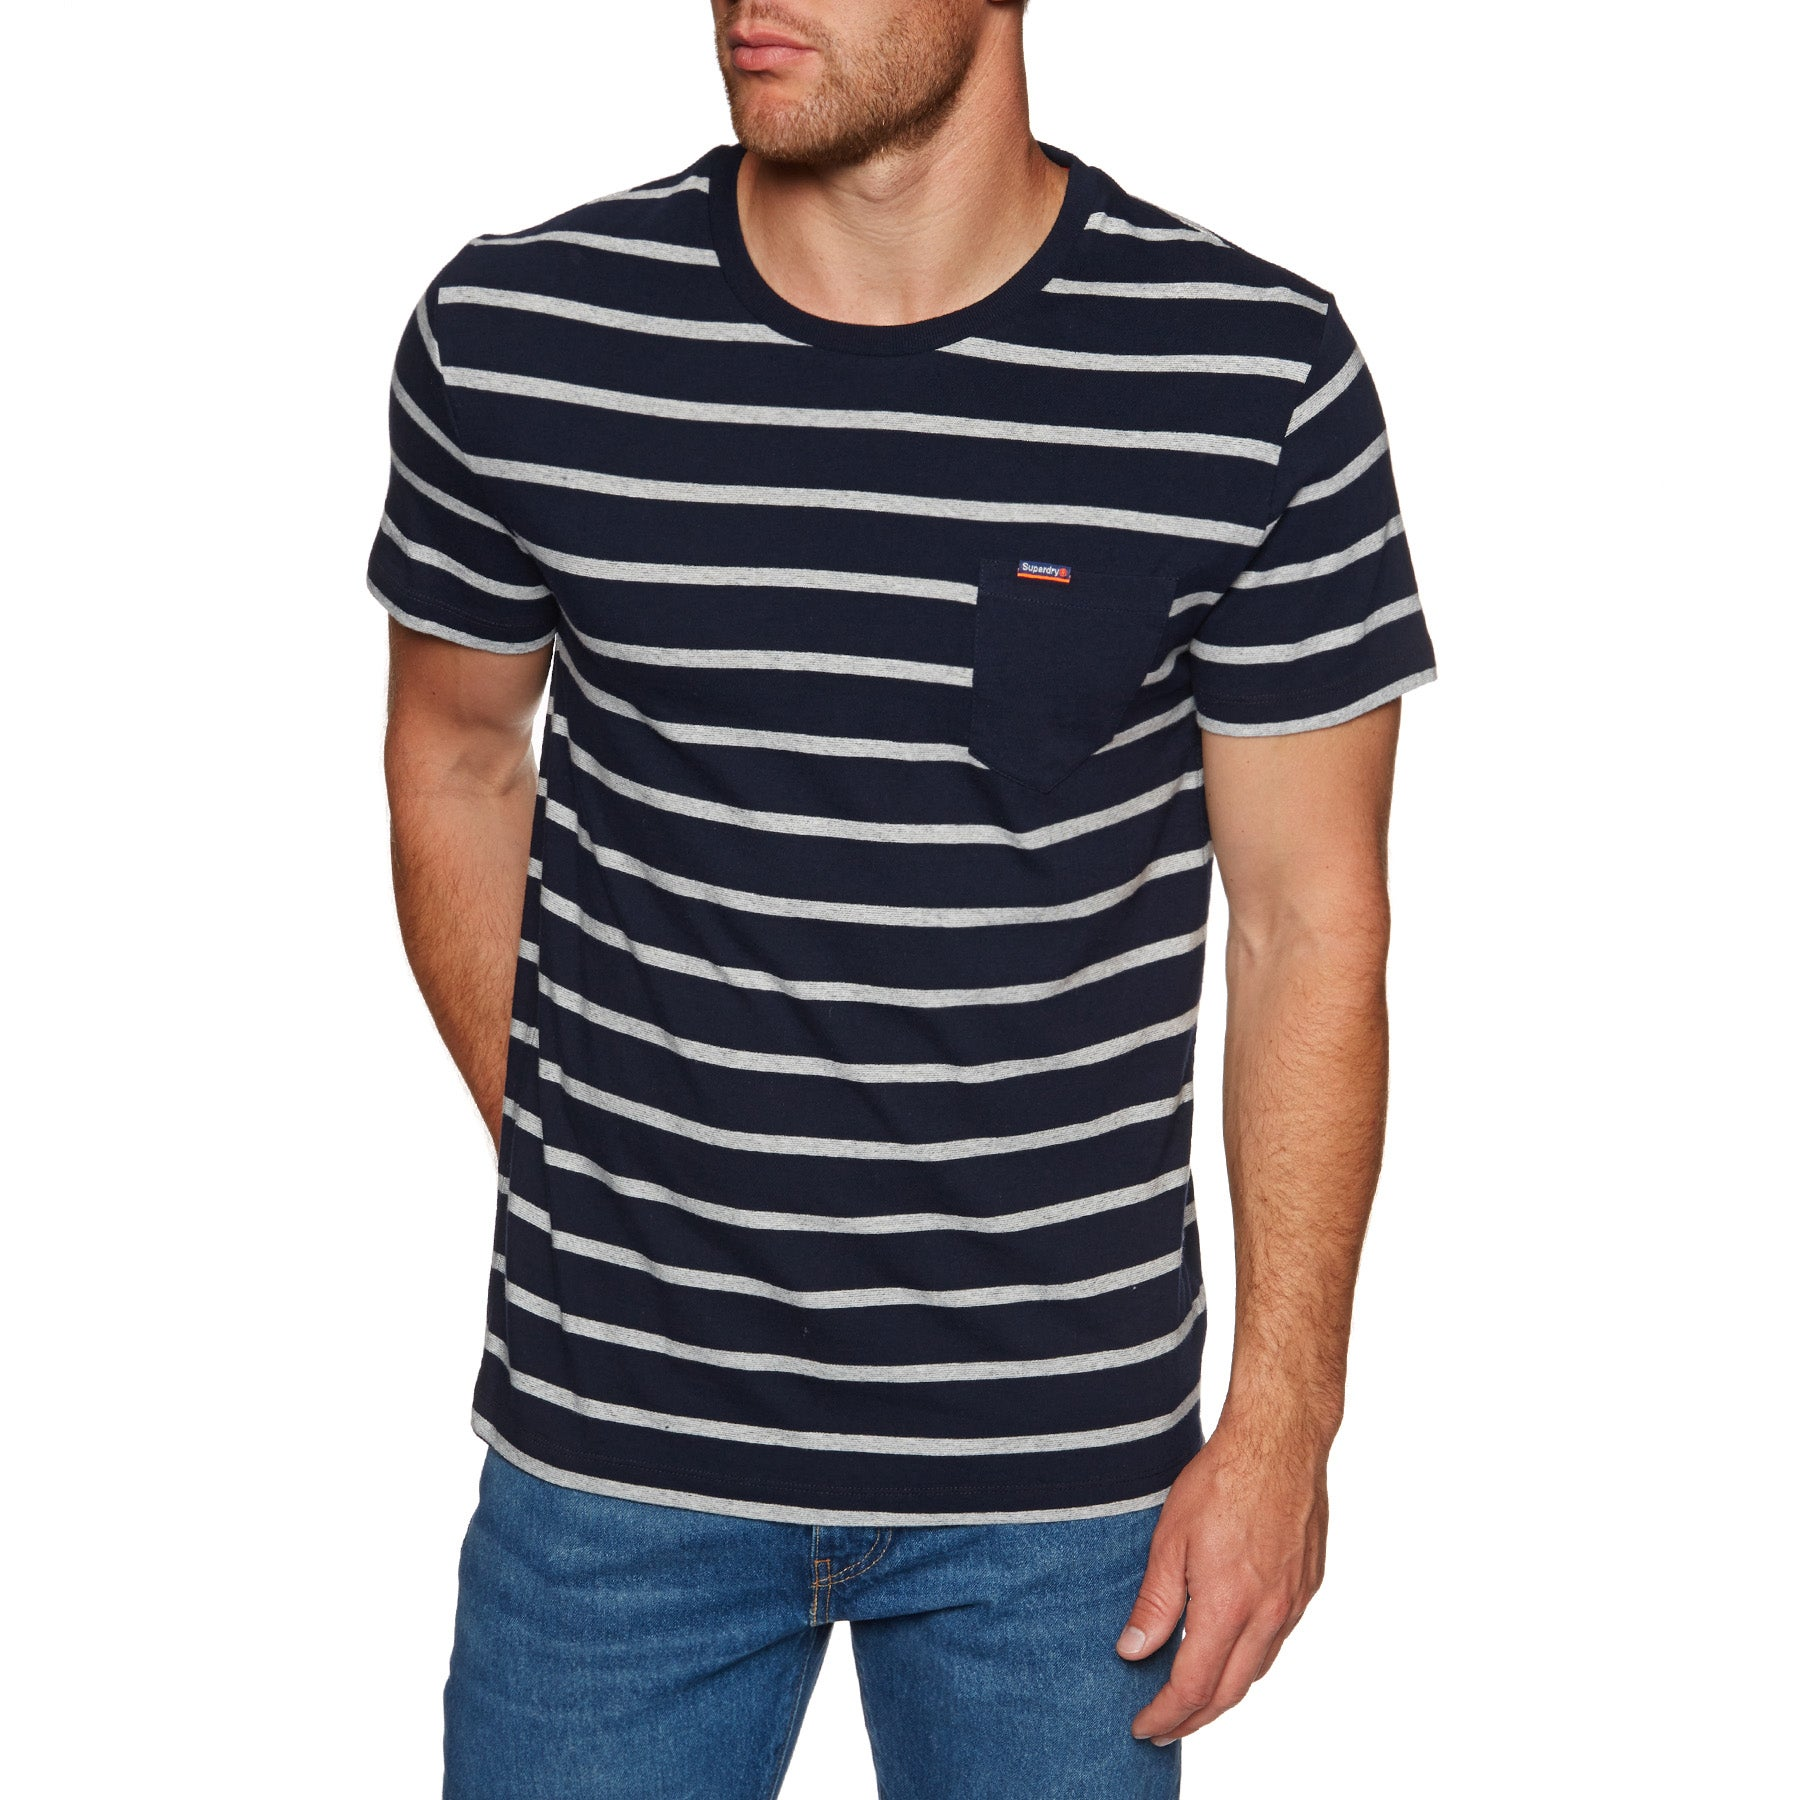 Superdry Orange Label Portland Stripe Pocket Short Sleeve T-Shirt - Navy Auto Stripe